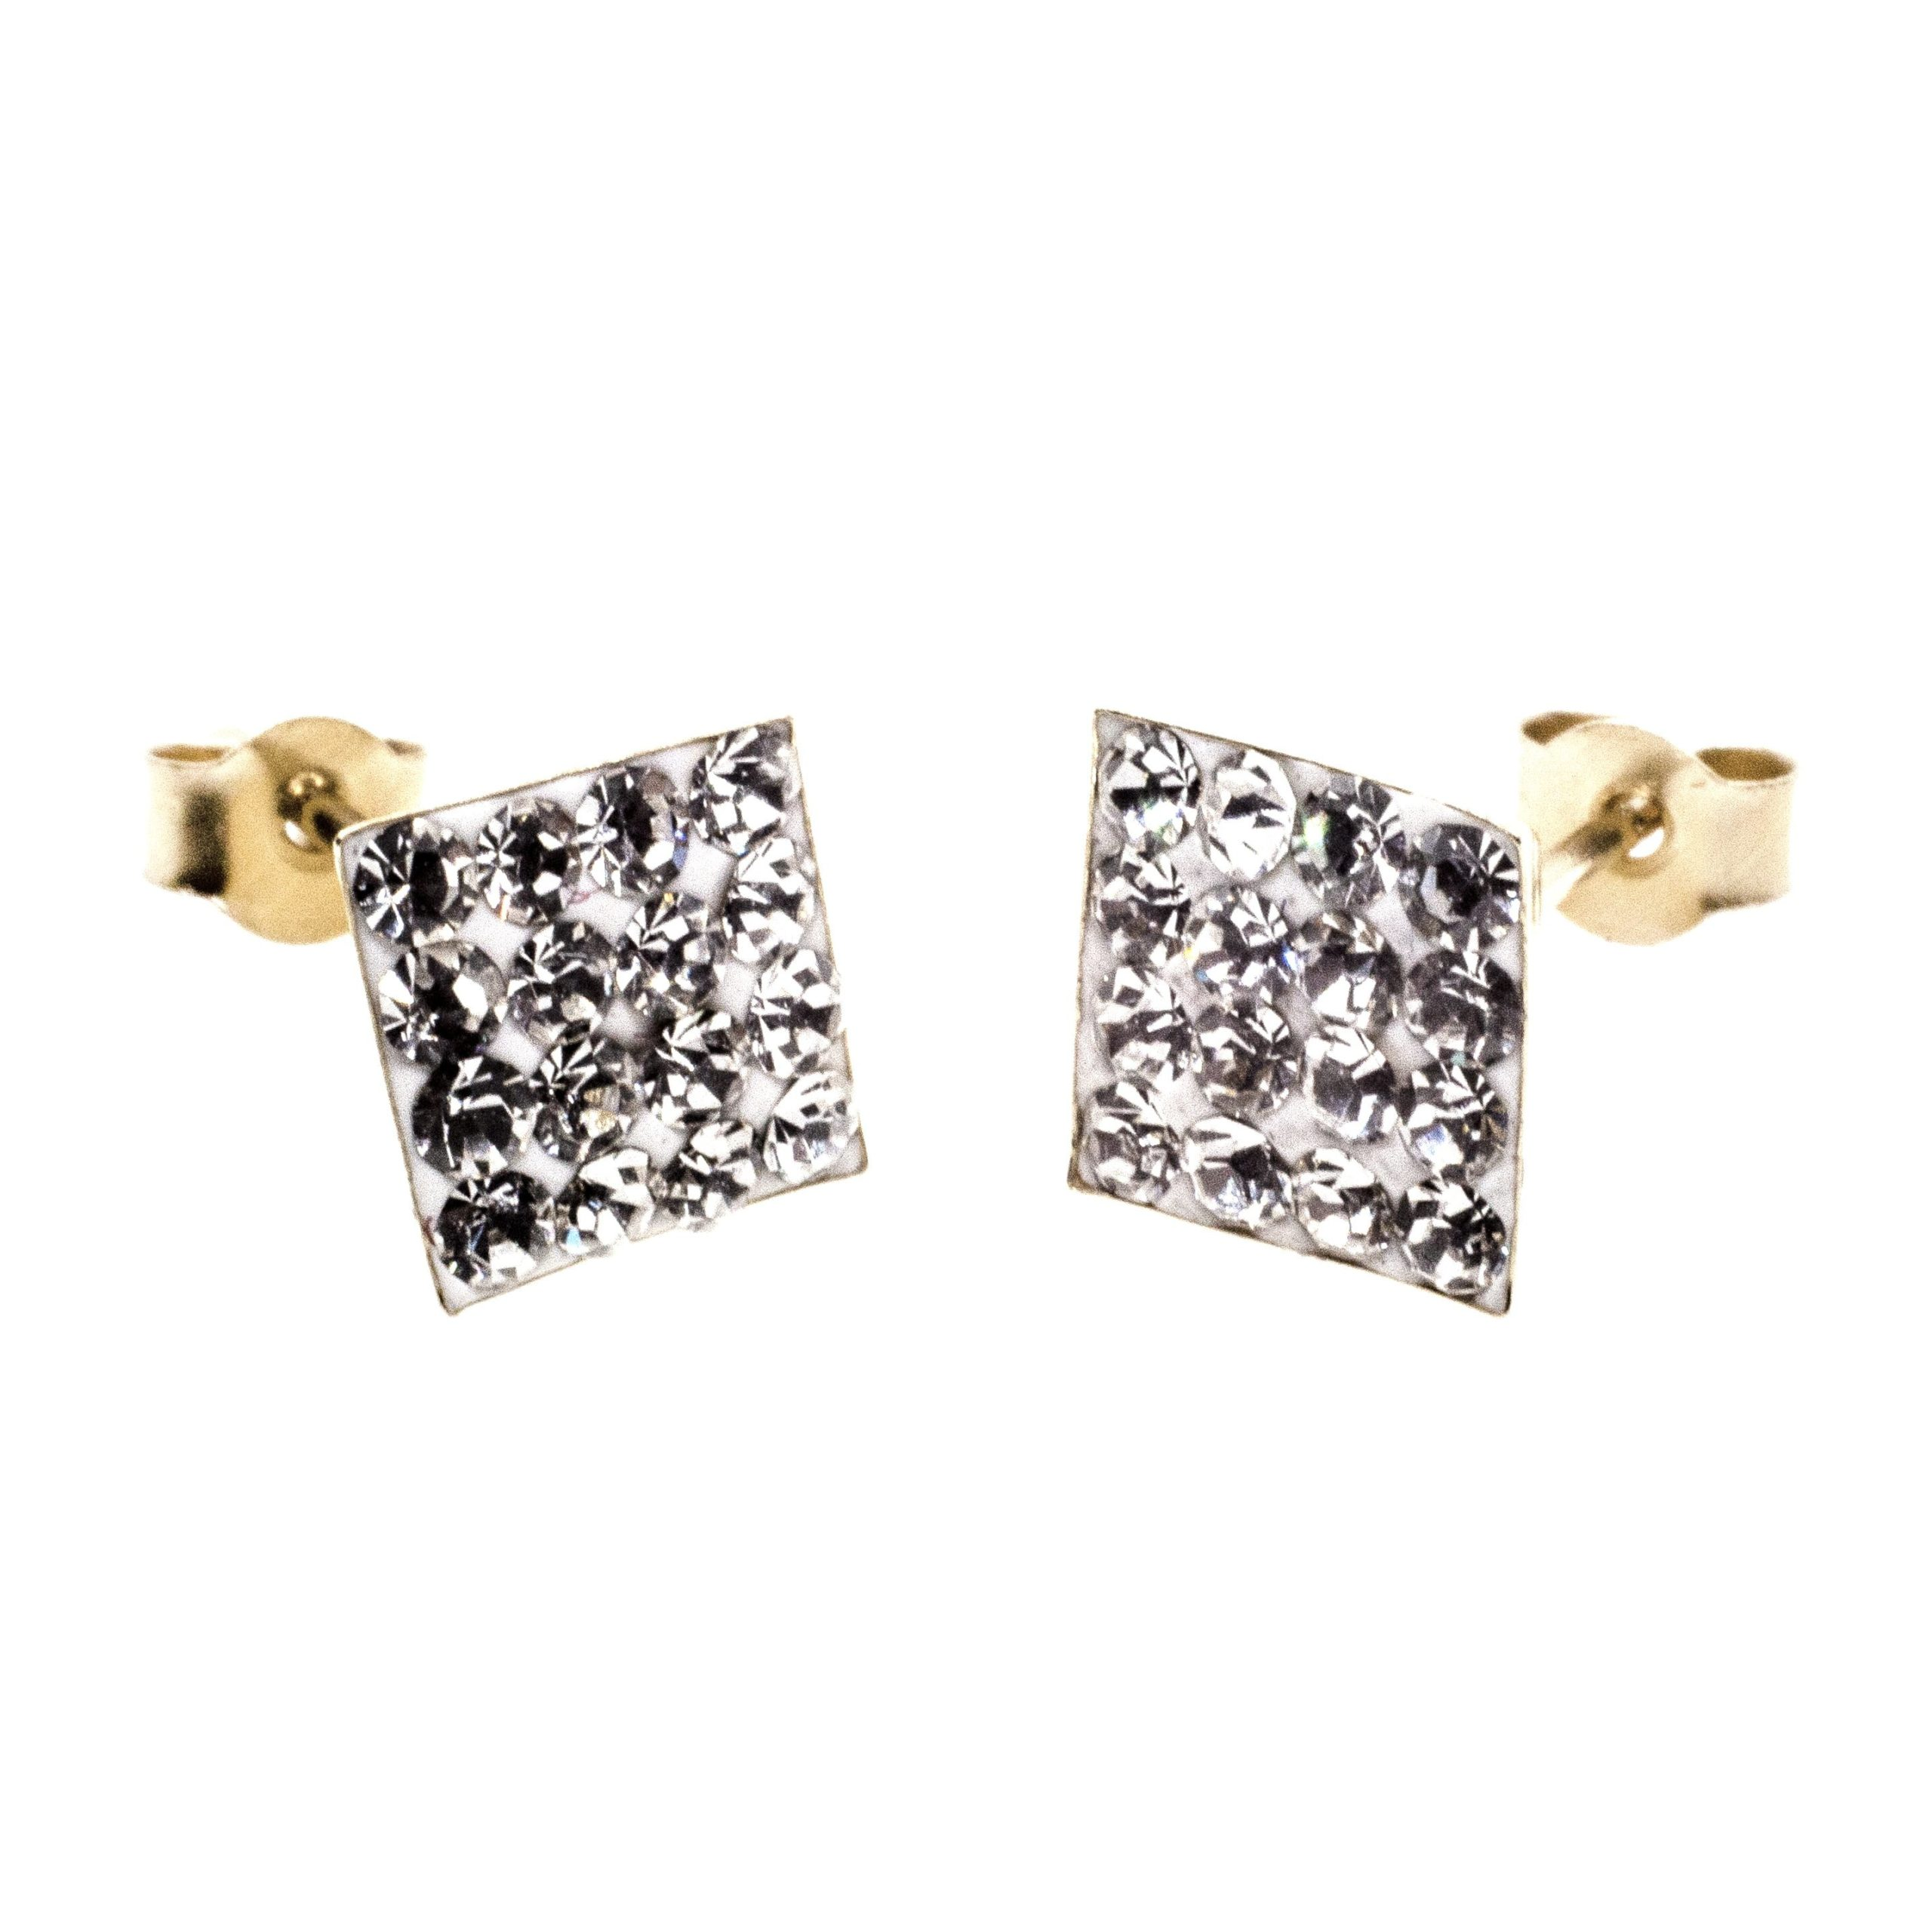 7mm square stud earring 9ct gold with Austrian crystal gems alt 3